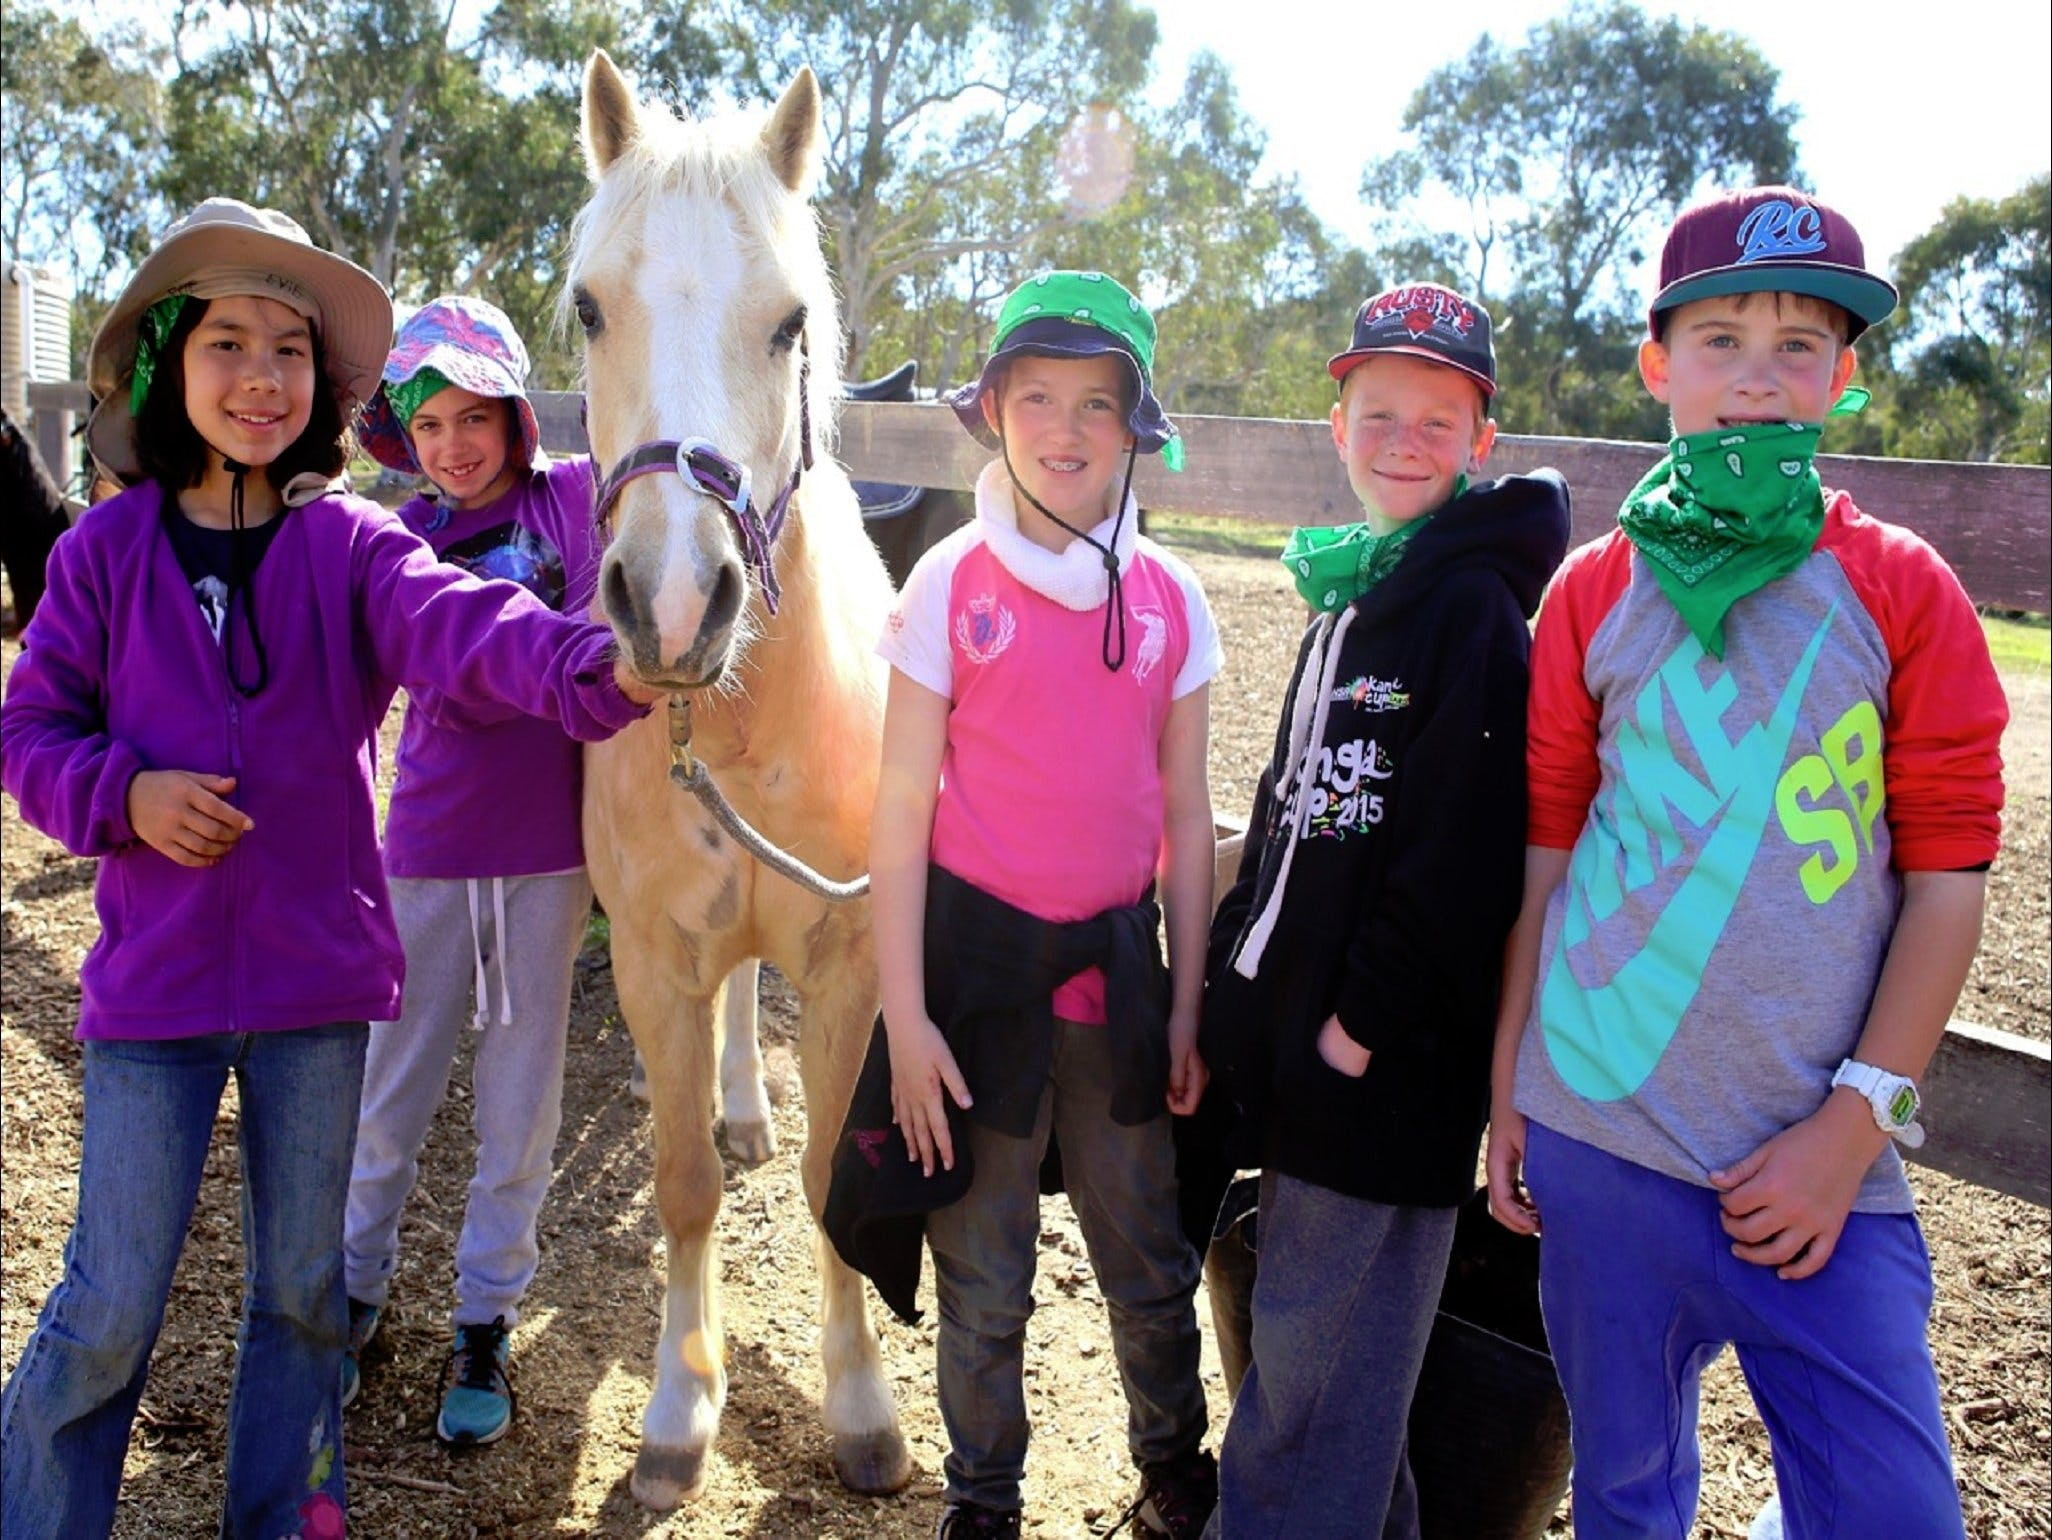 The Saddle Camp - Accommodation in Bendigo